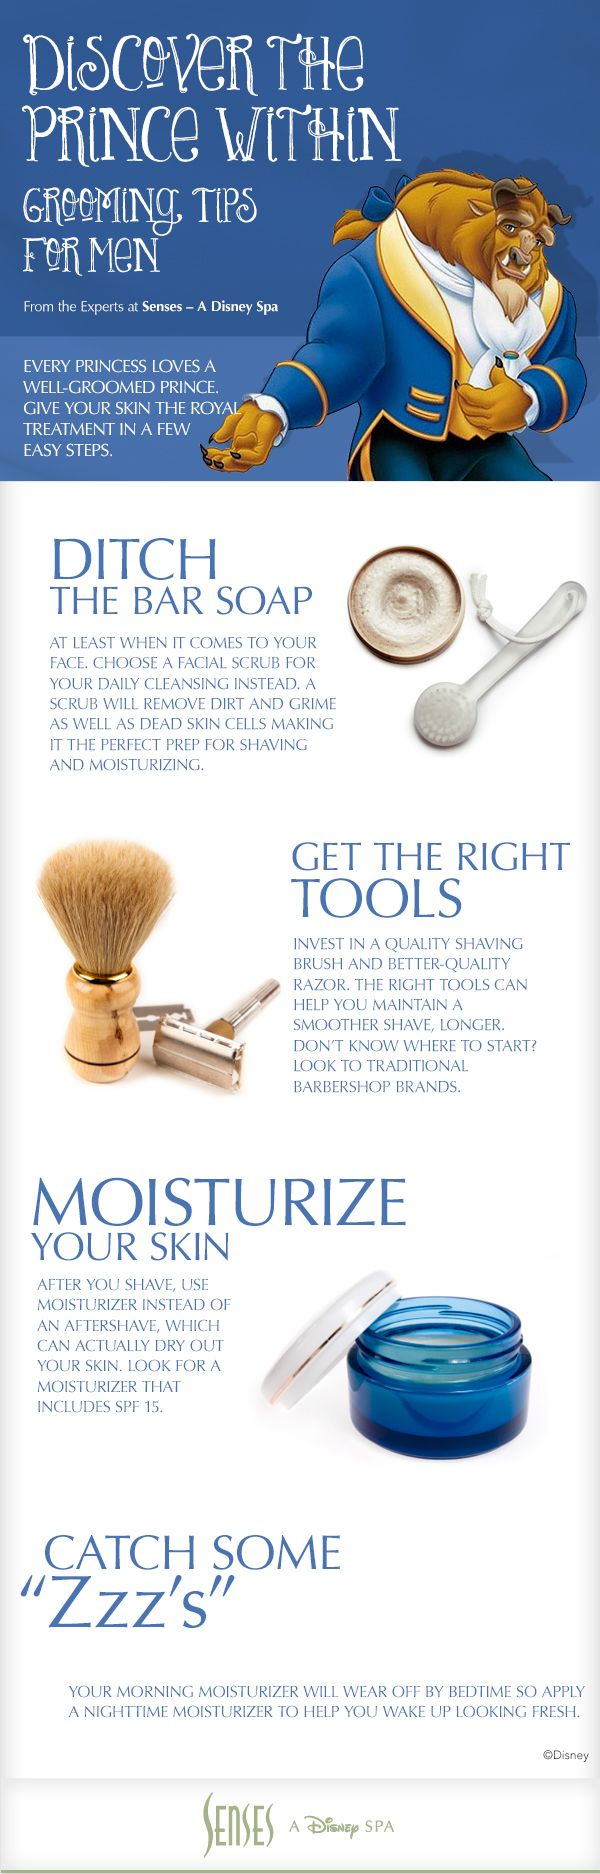 Grooming Tips for Men #WaltDisneyWorld #Spa